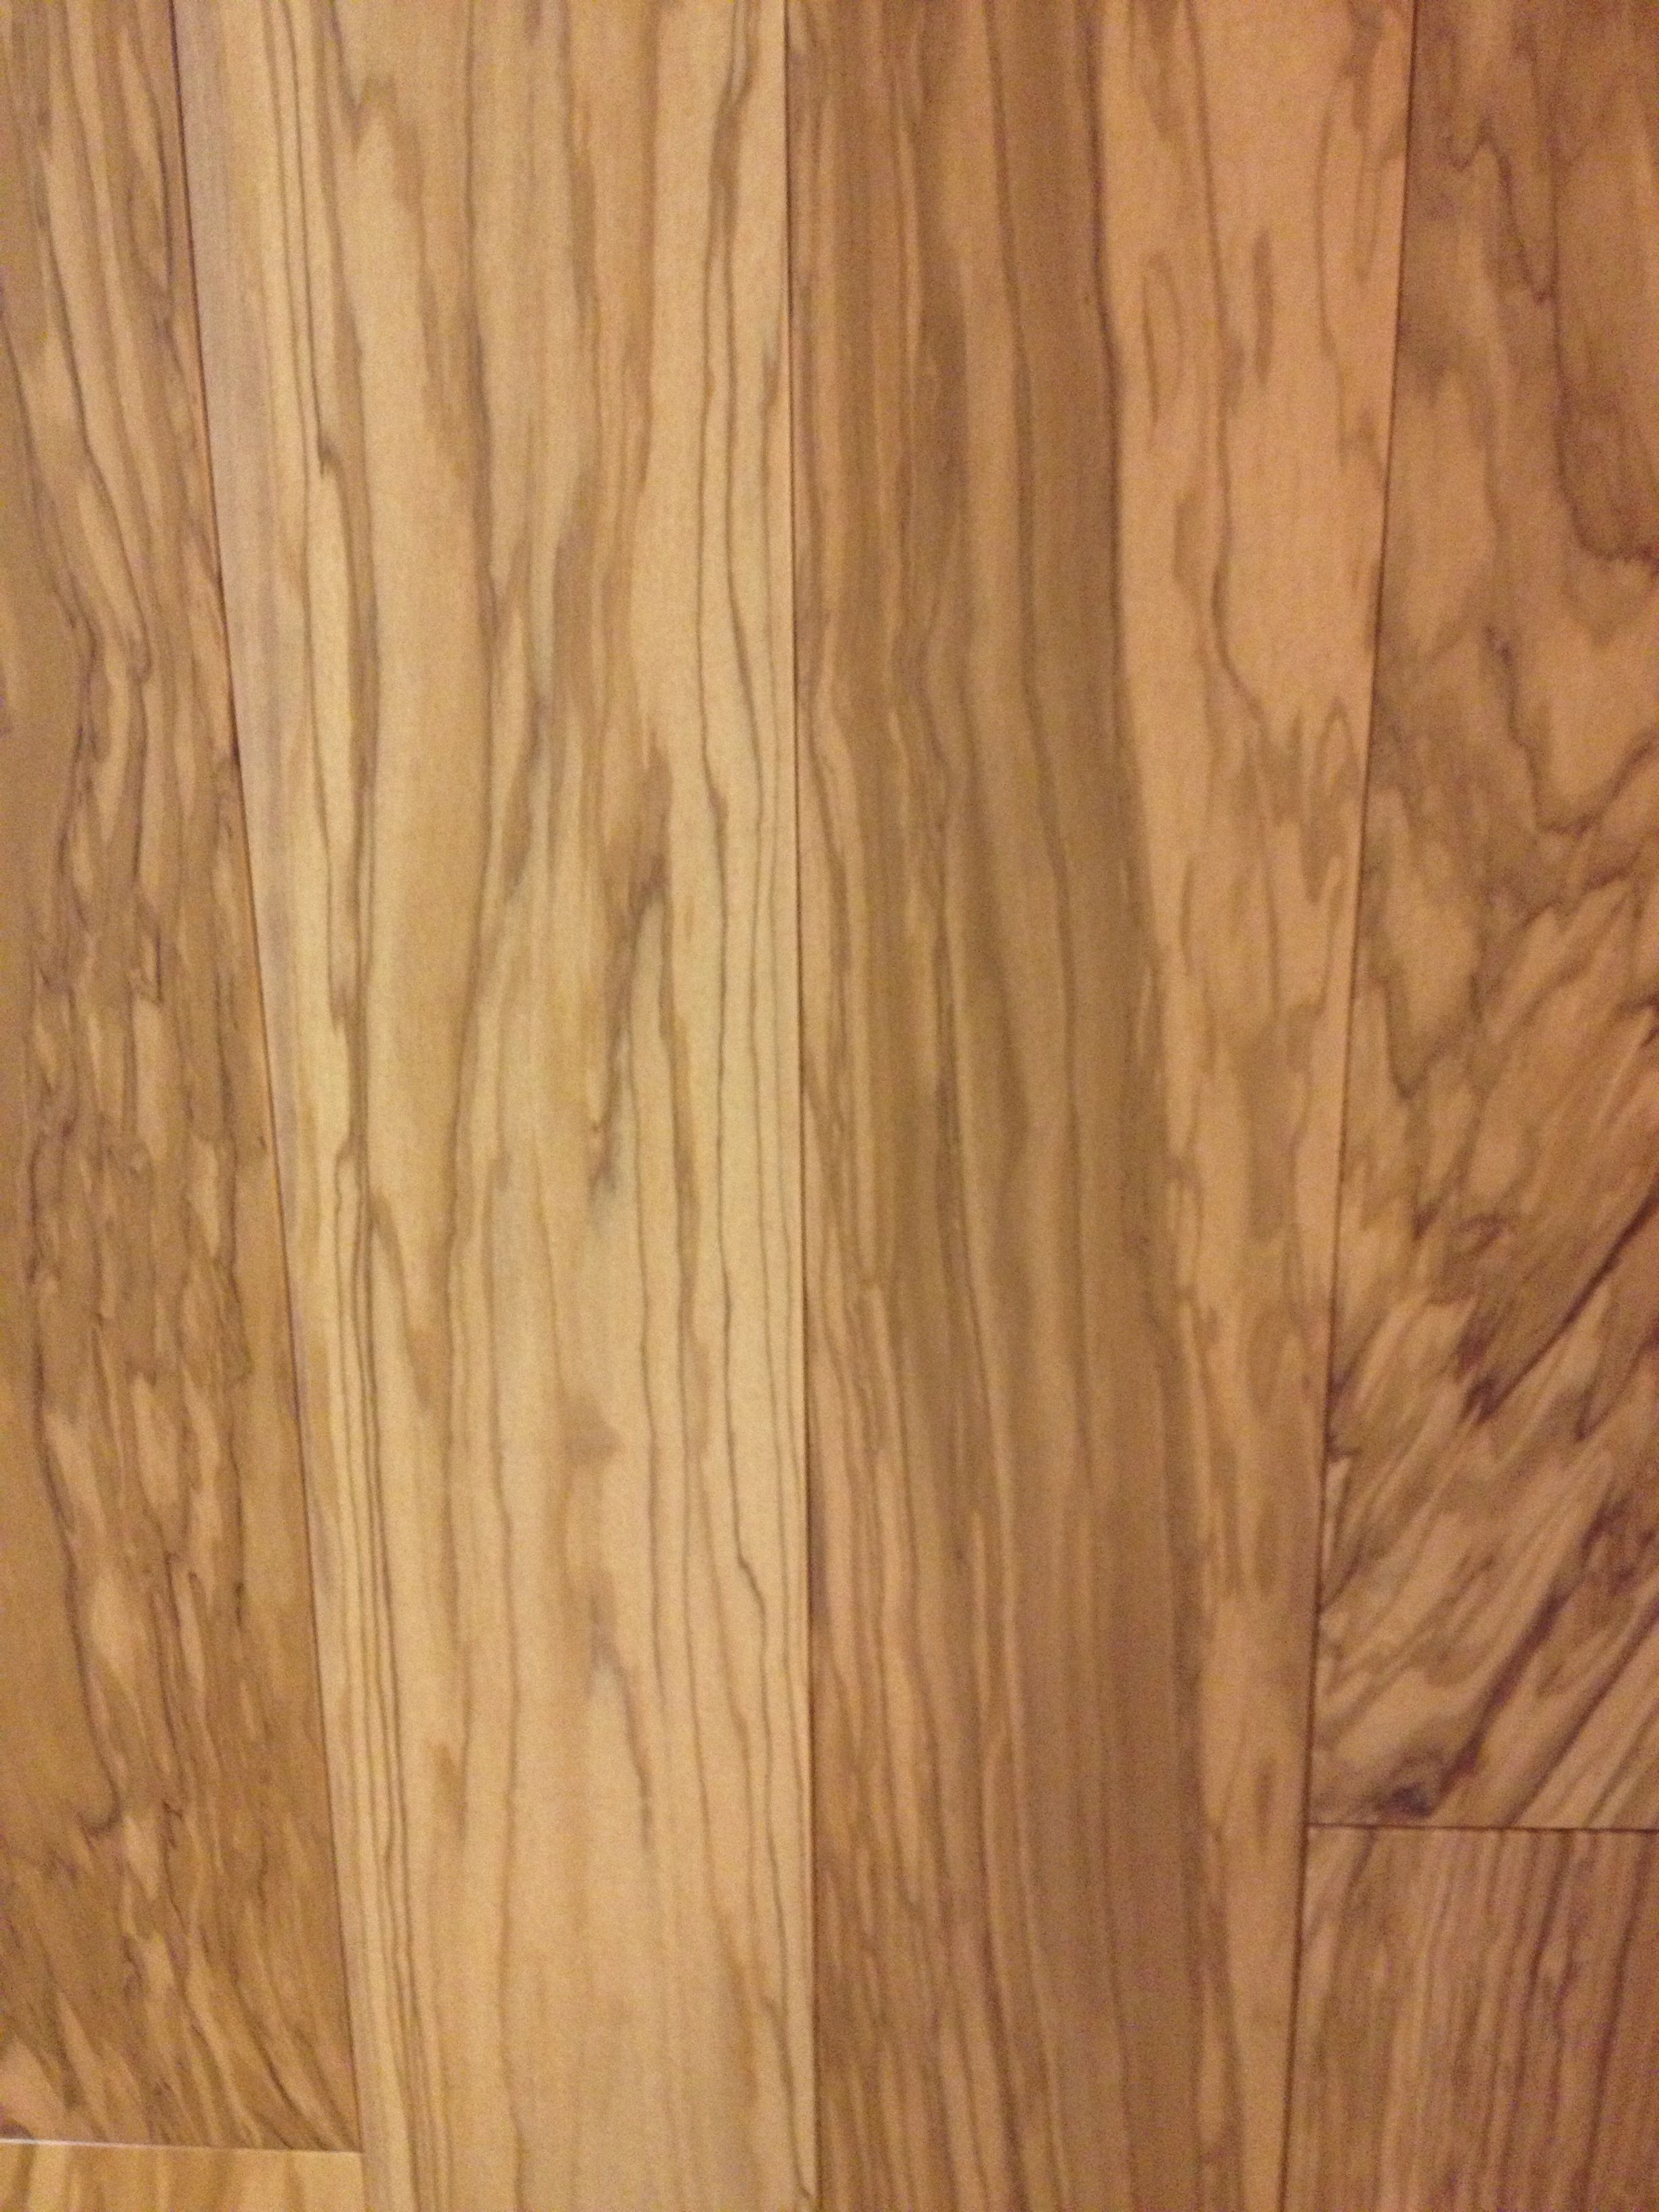 Hardwood Flooring Liquidators toronto Of Tuscany Olive Wood Floor there is Nothing Quite Like Olive Wood for for Tuscany Olive Wood Floor there is Nothing Quite Like Olive Wood for Turning Your Home